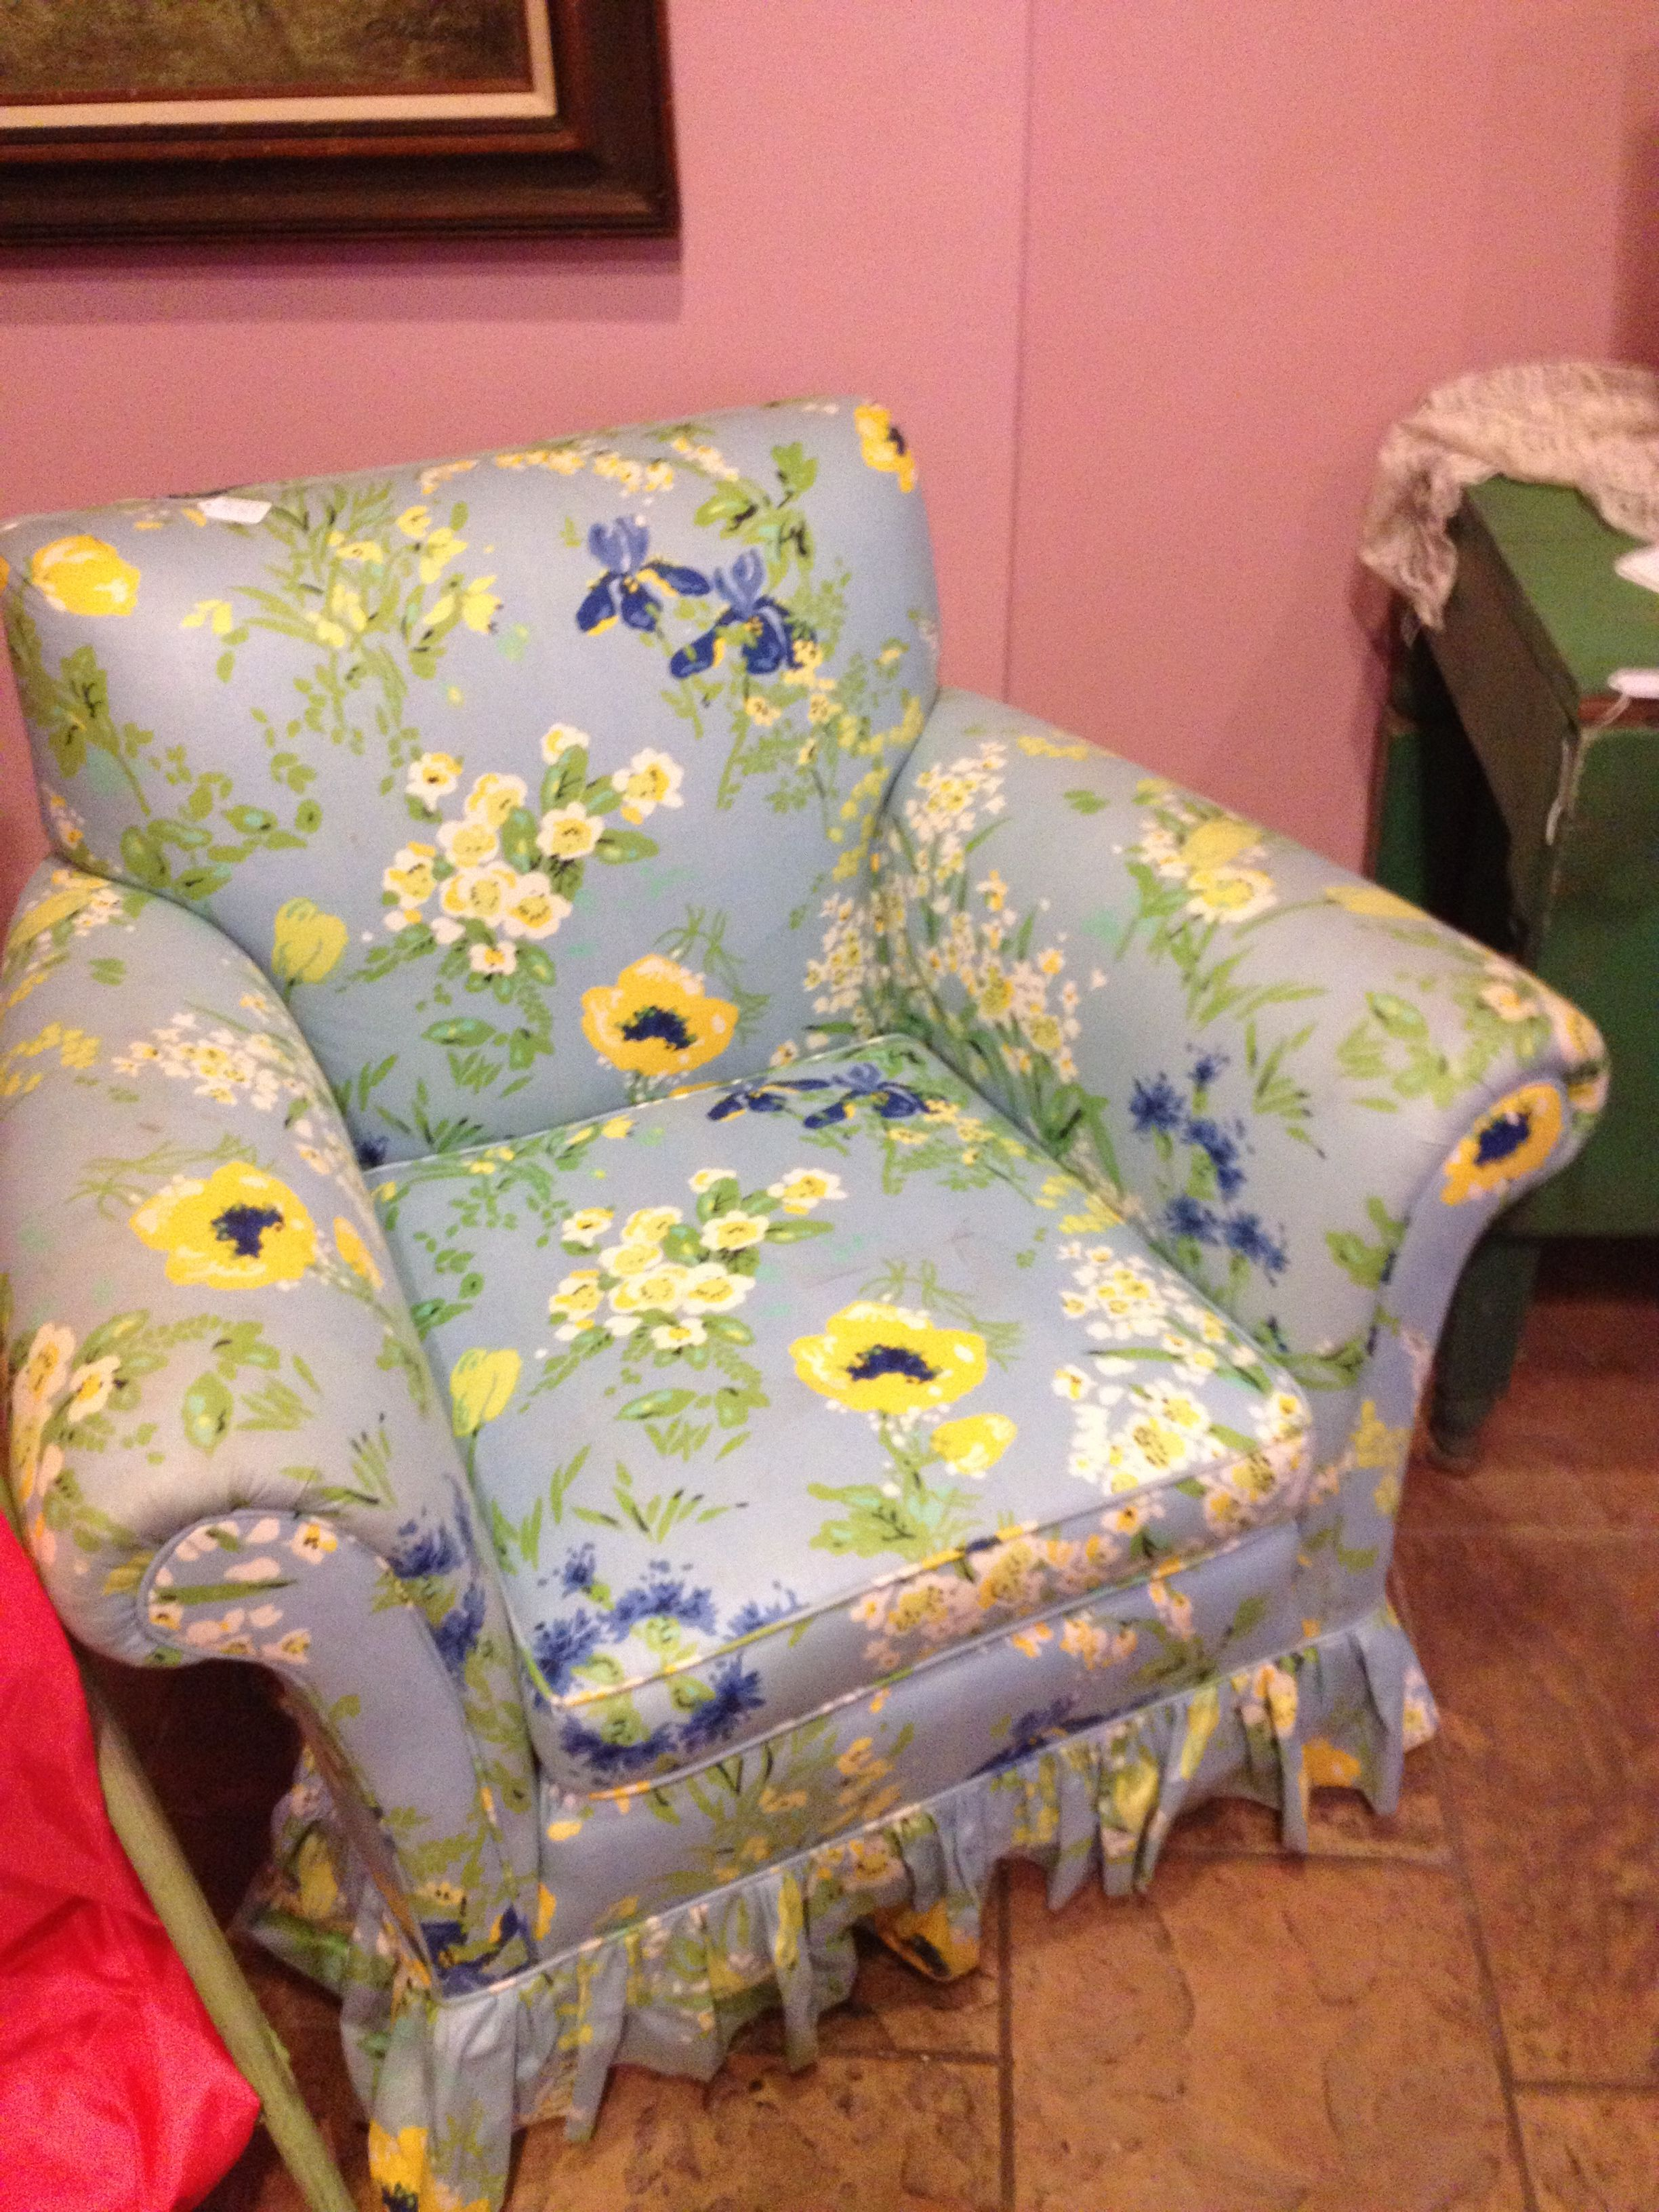 lilly pulitzer chair captain chairs for center console boats vintage looking bedroom club mint